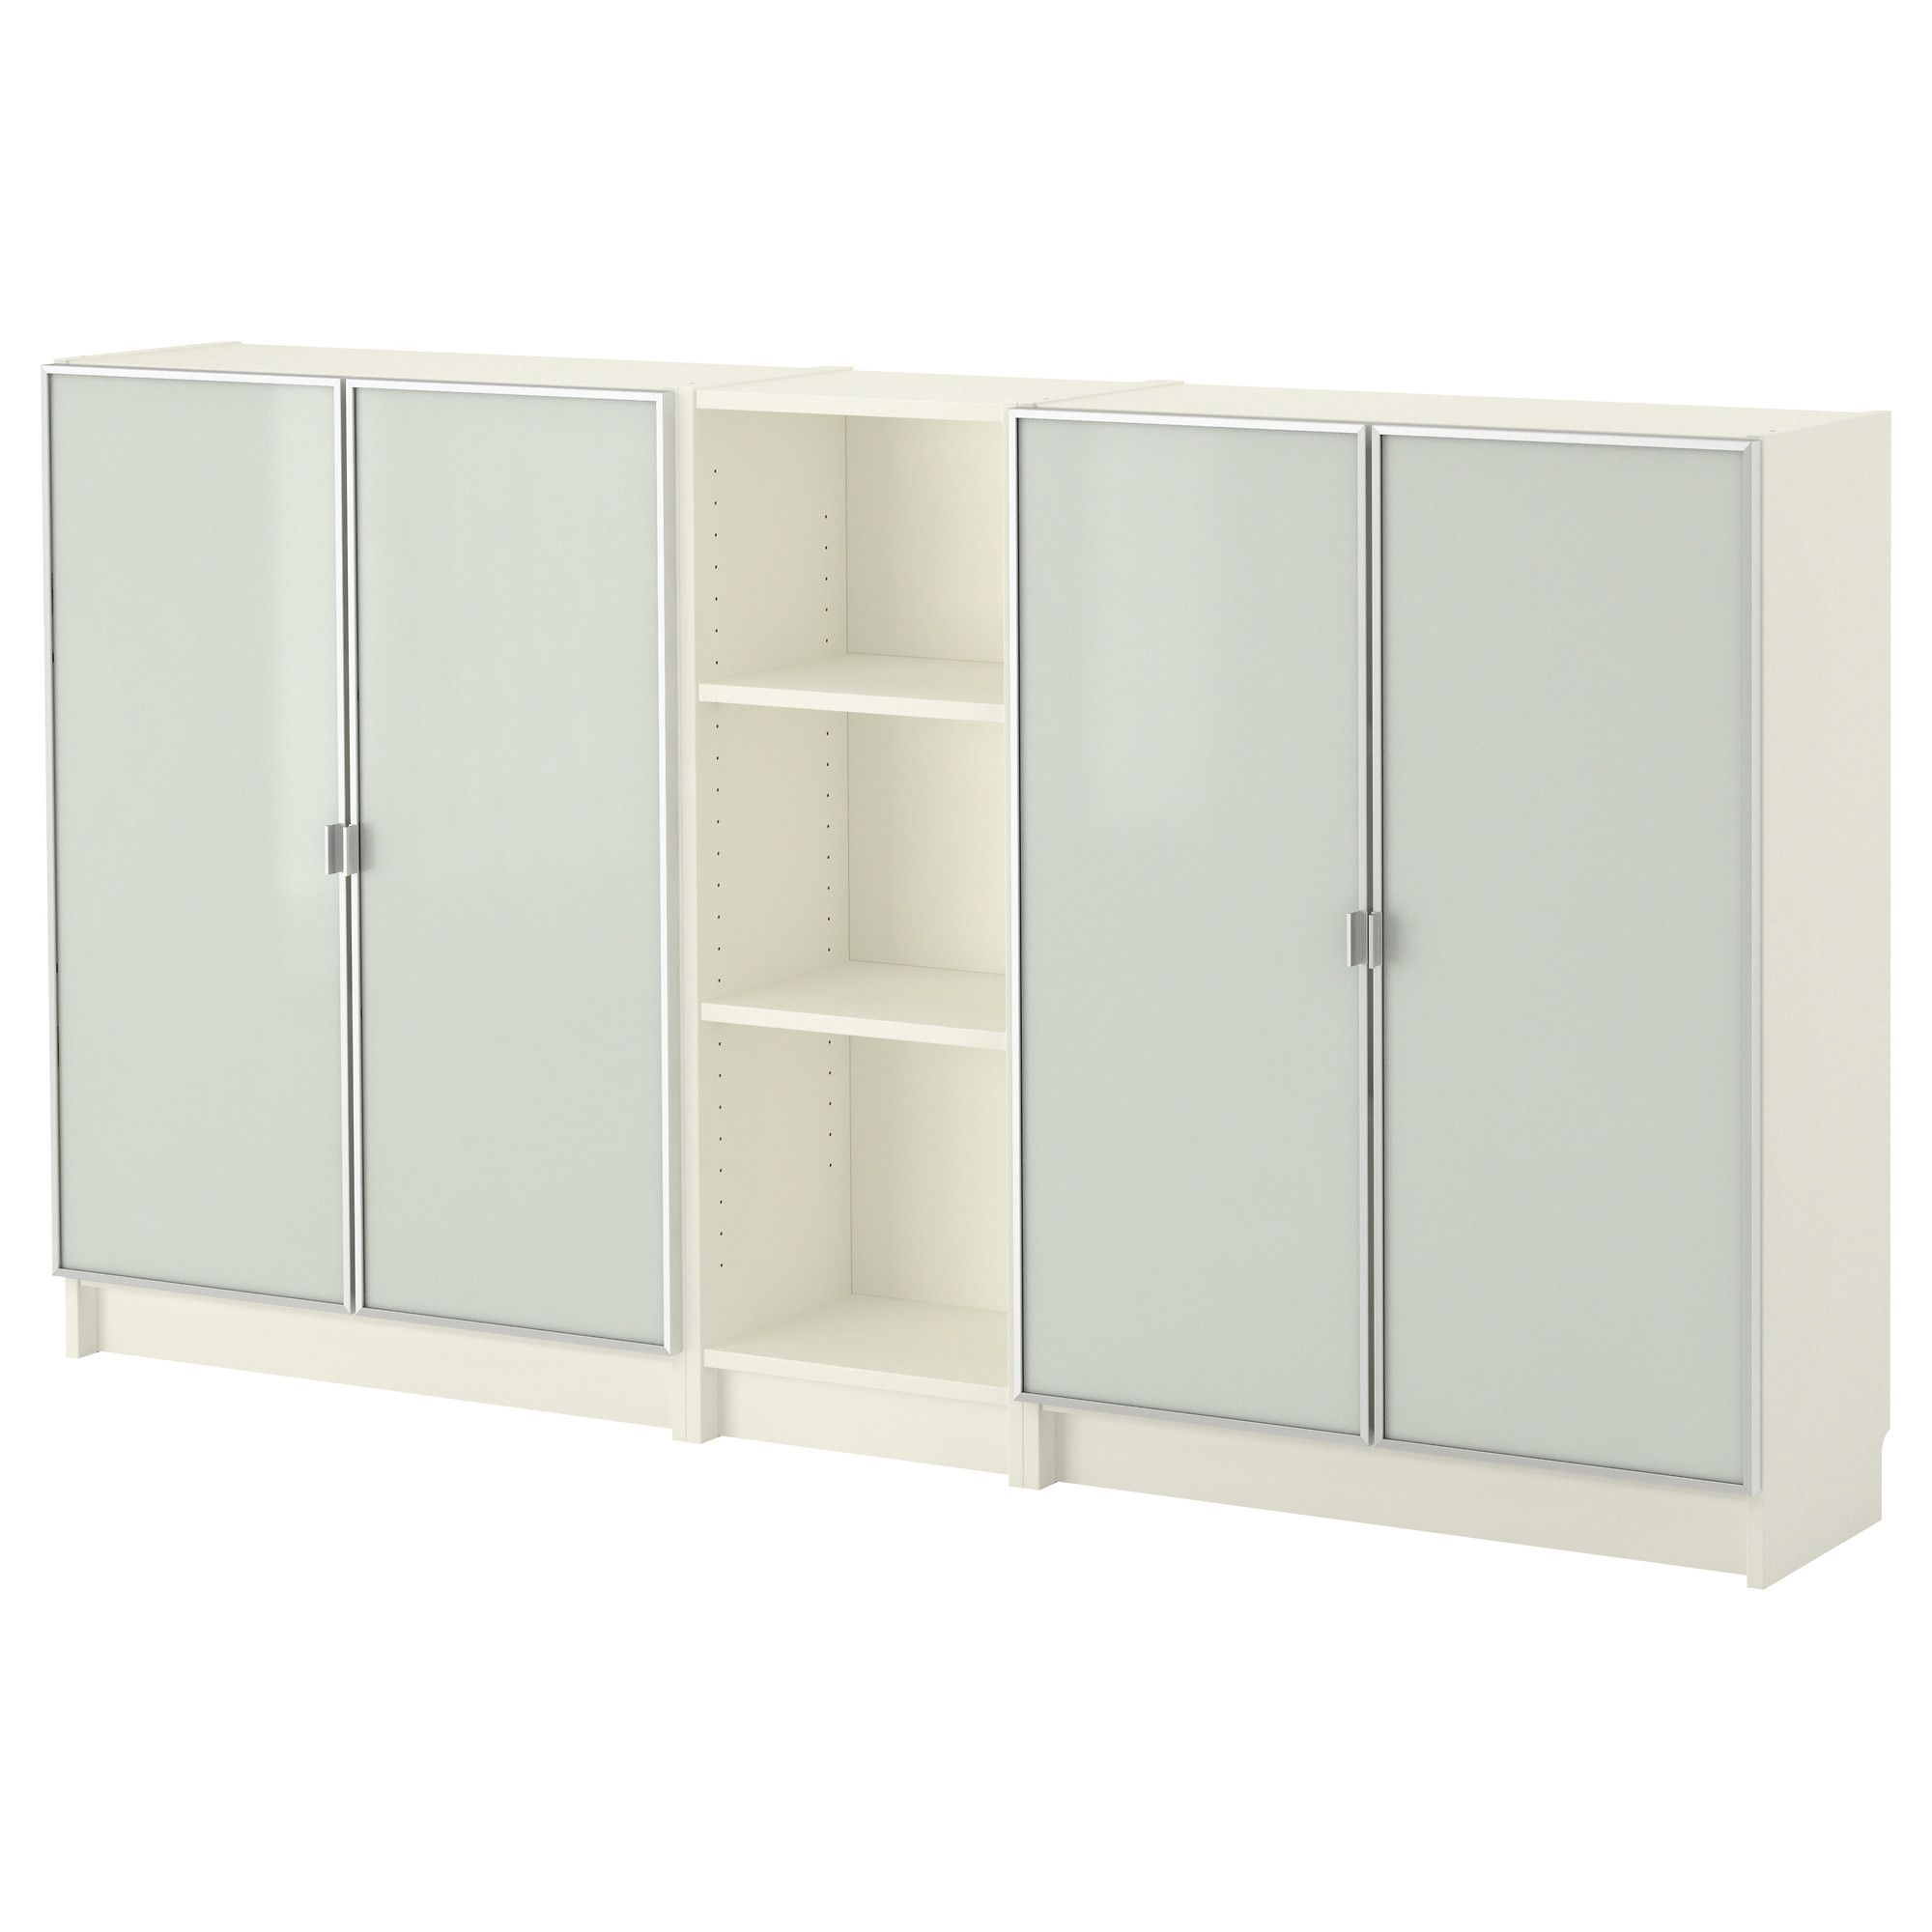 Billy Morliden Bookcase White 78 3 4x41 3 4x11 : White Bookcase With Doors